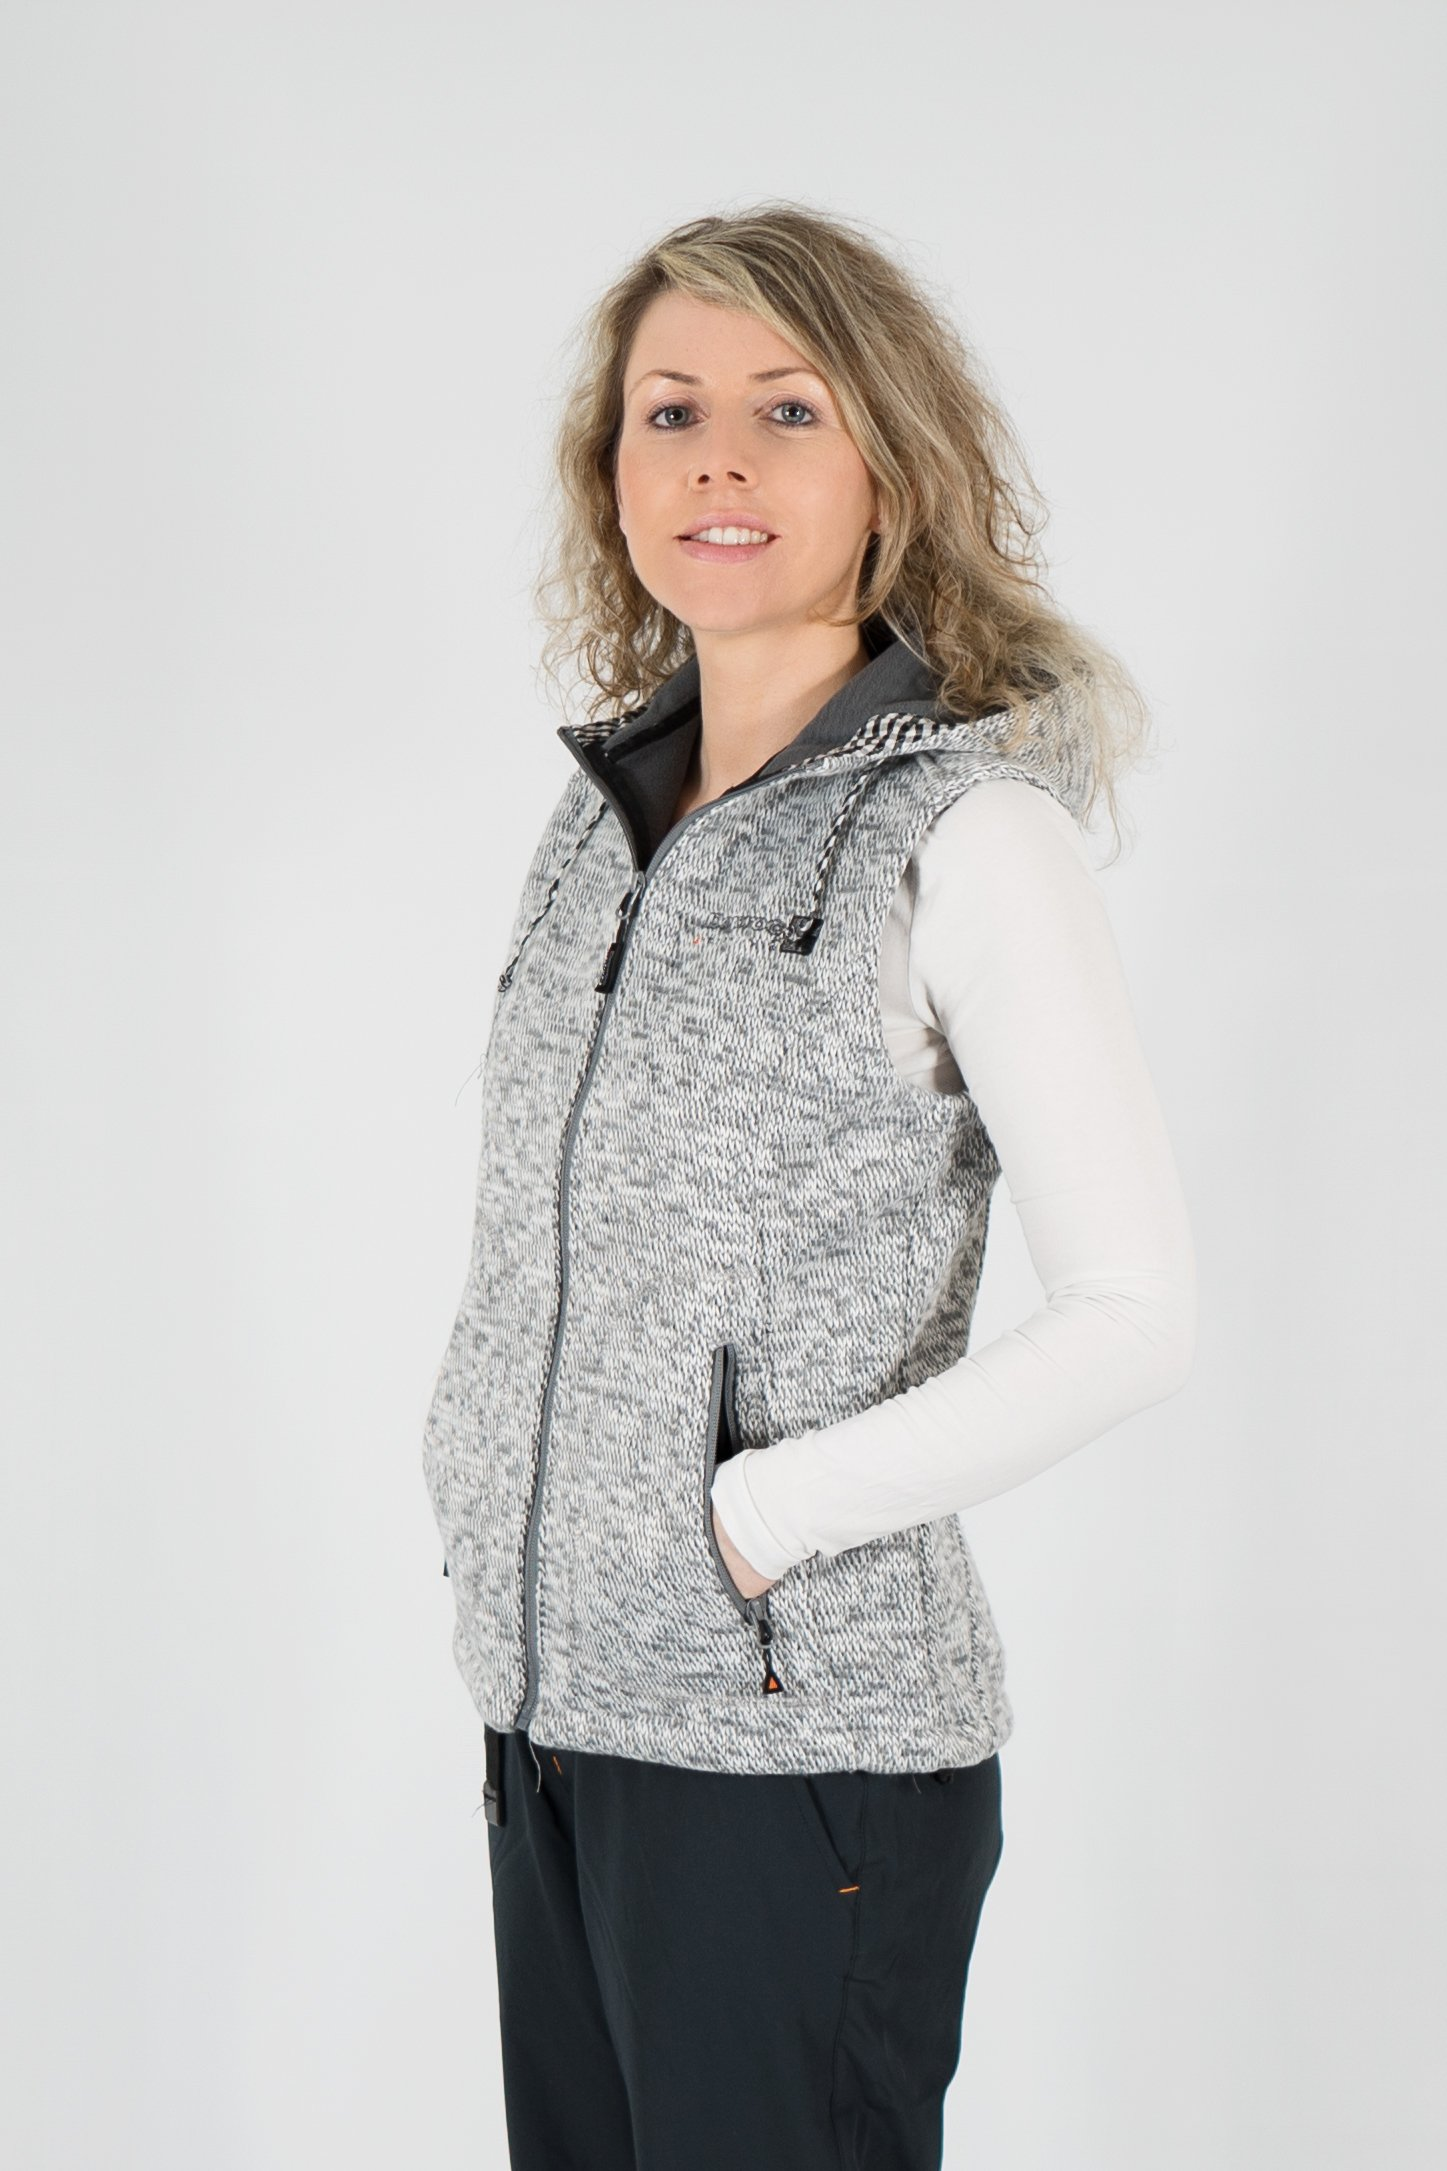 810ql2k9z1L - Deproc Women's WHITEFORD, Sweat Vest